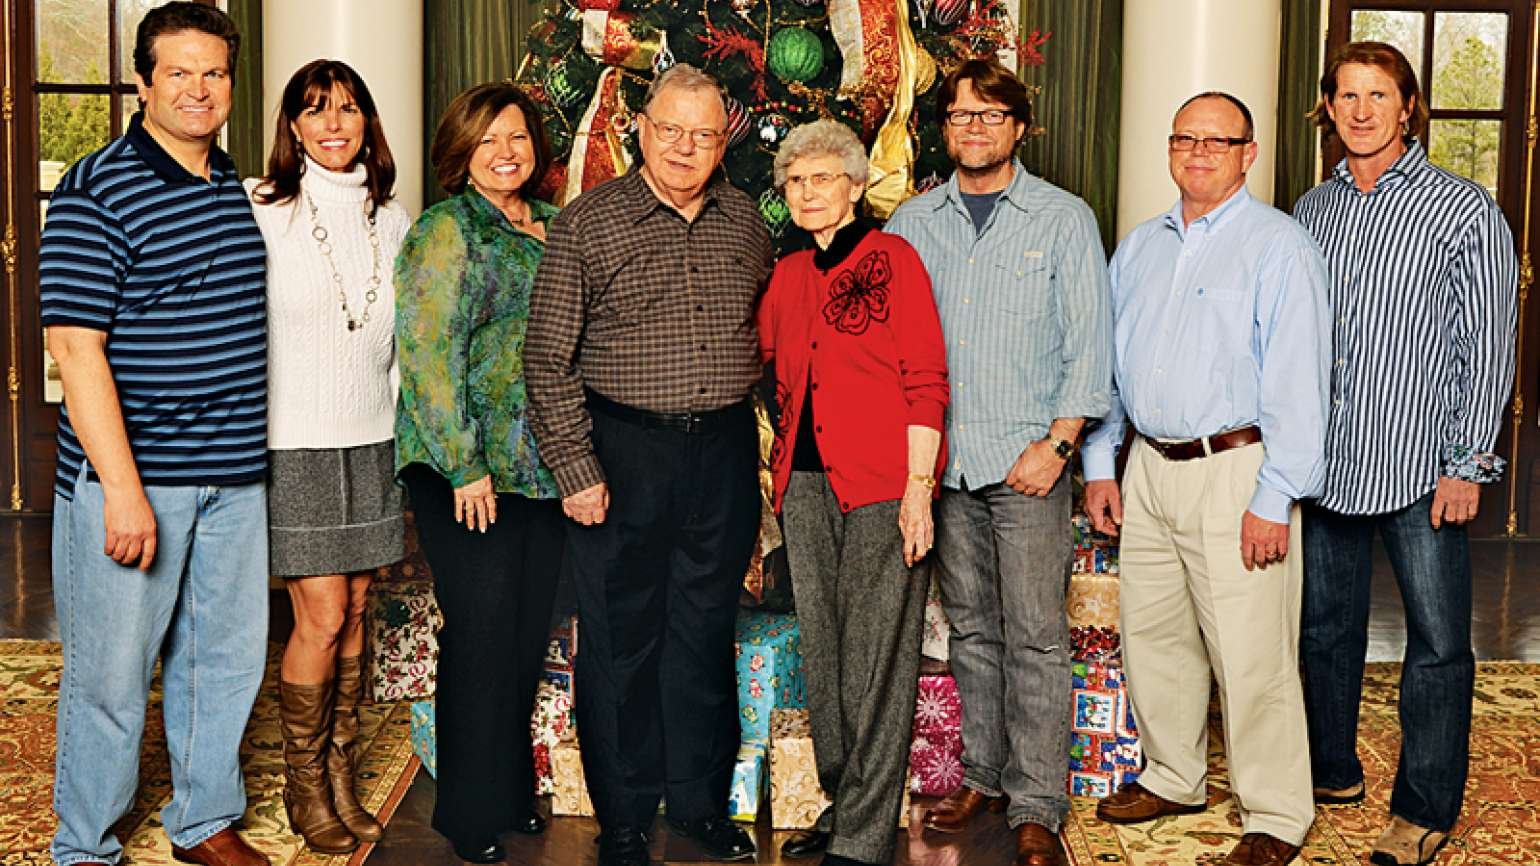 Rick and his family in 2012; his foster parents, the Prices, are in the center